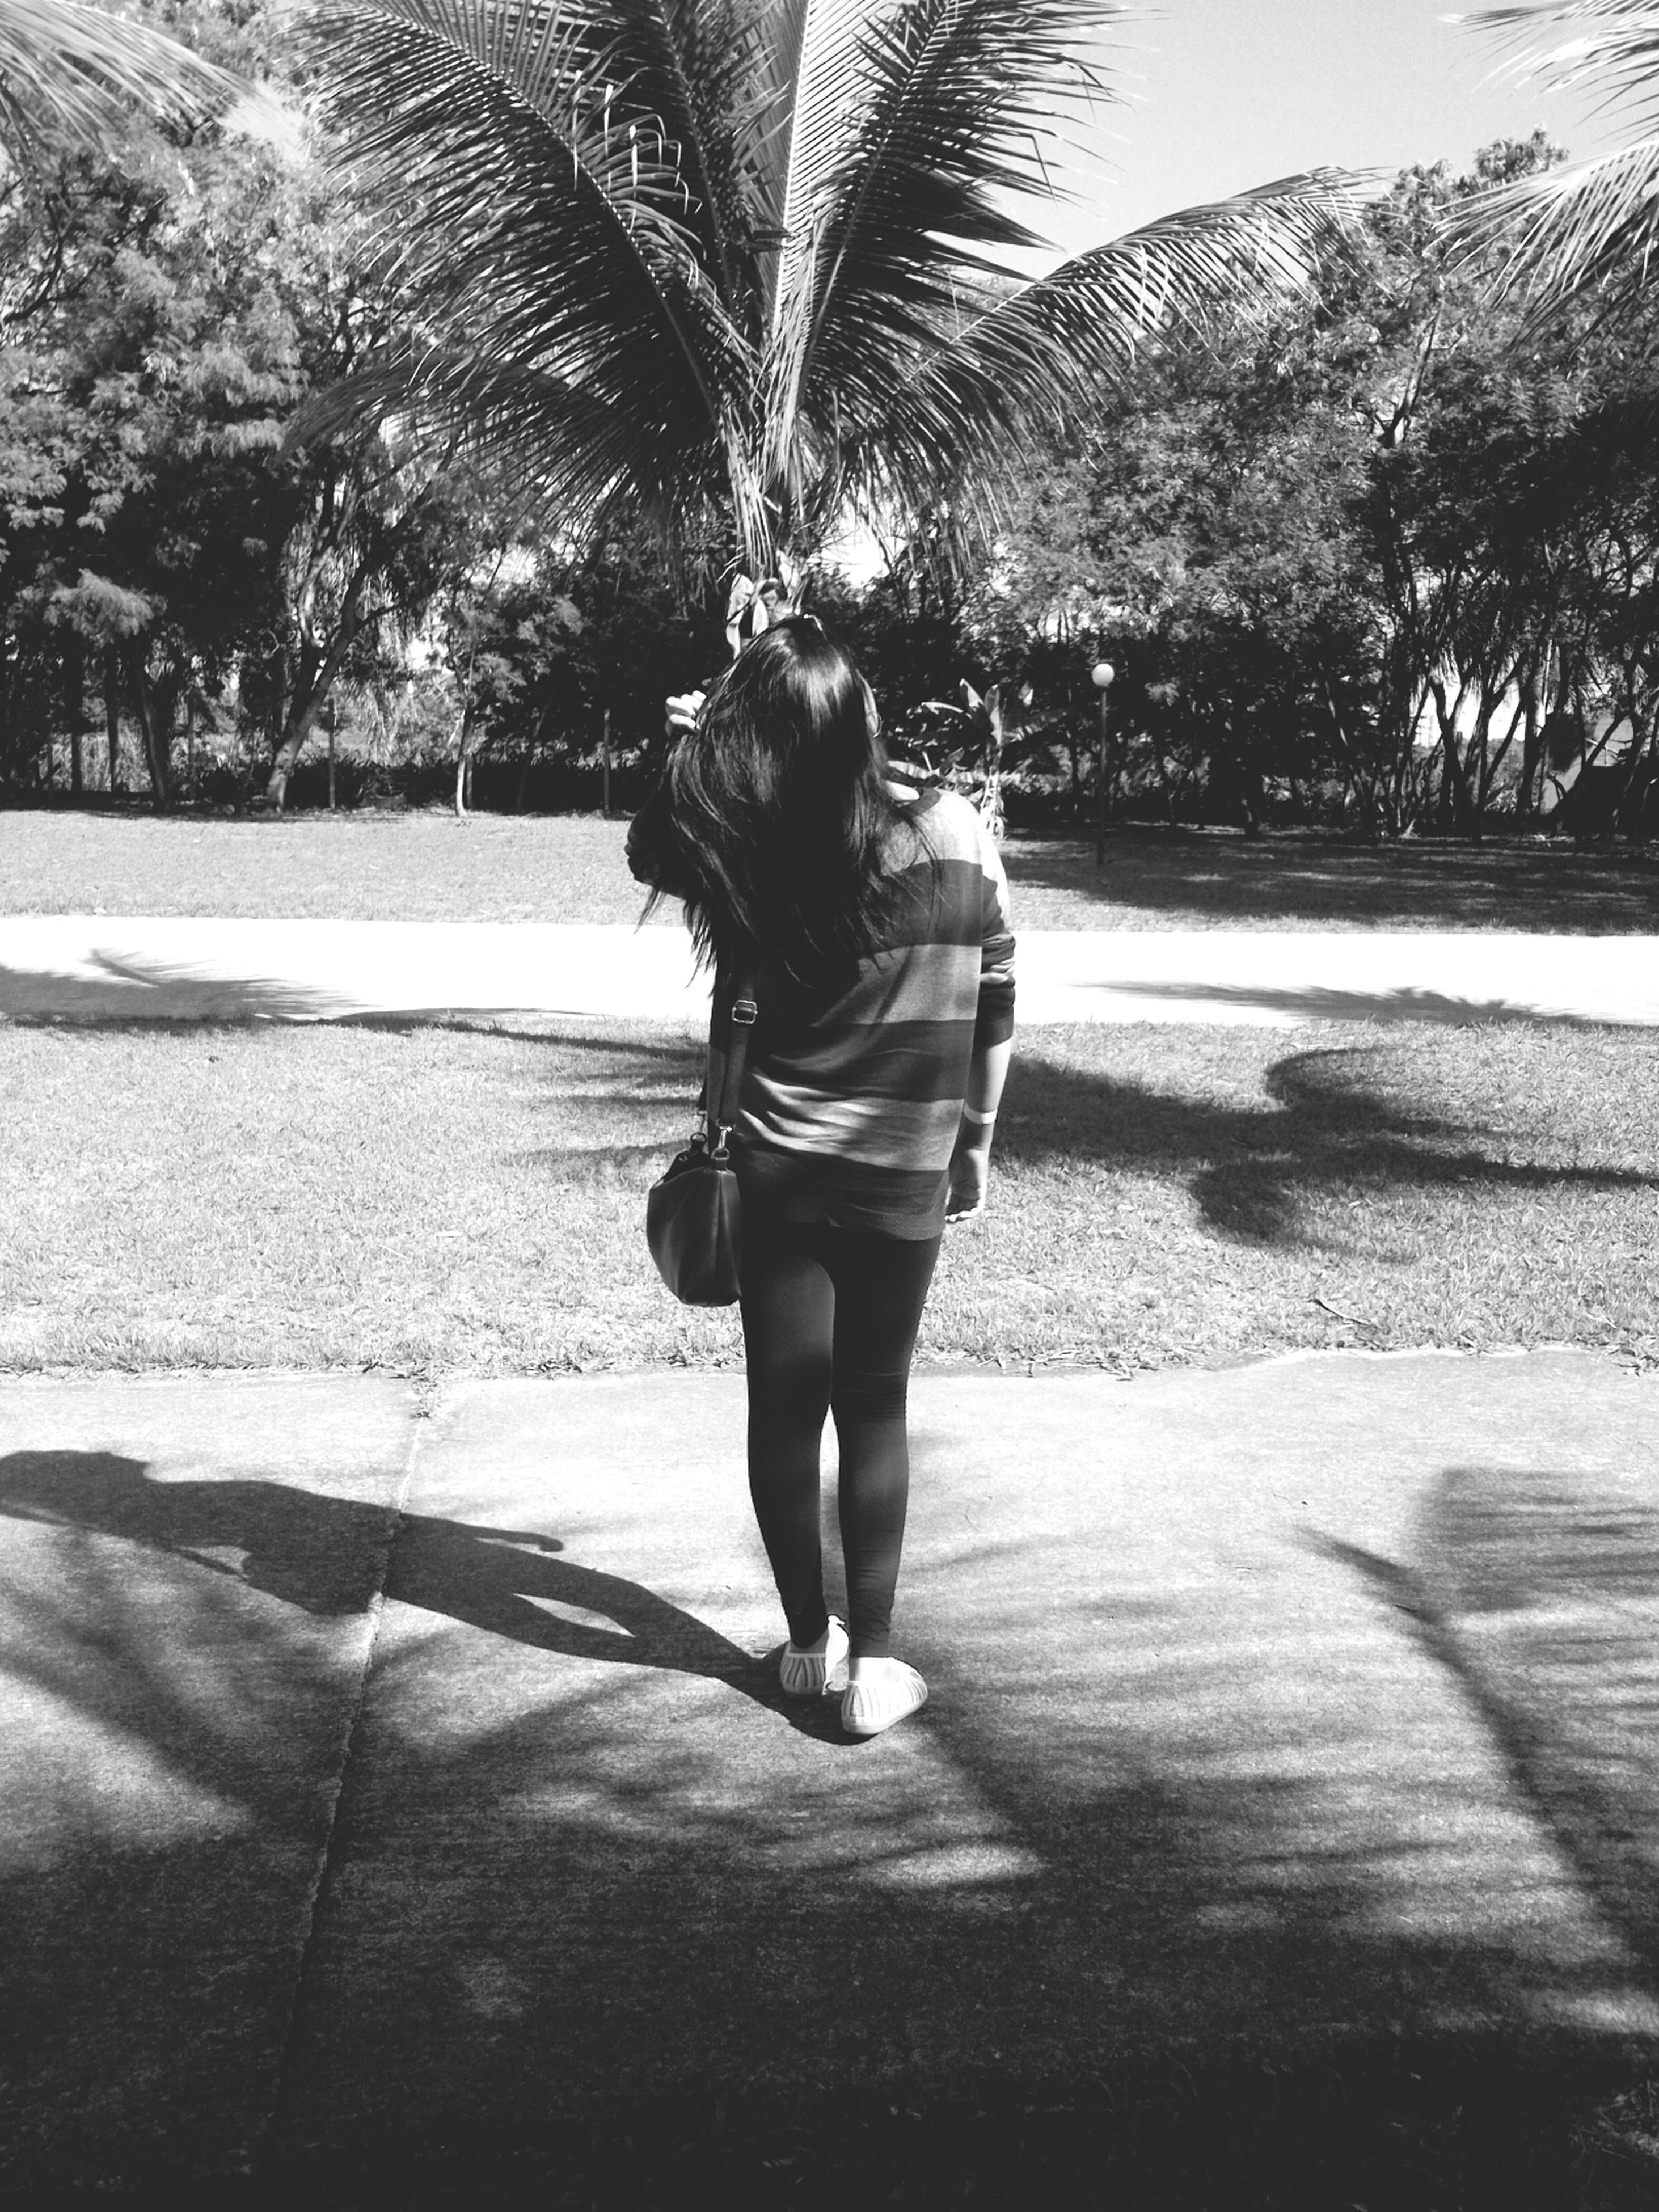 full length, lifestyles, casual clothing, leisure activity, rear view, tree, walking, childhood, street, sunlight, person, road, shadow, girls, standing, park - man made space, elementary age, day